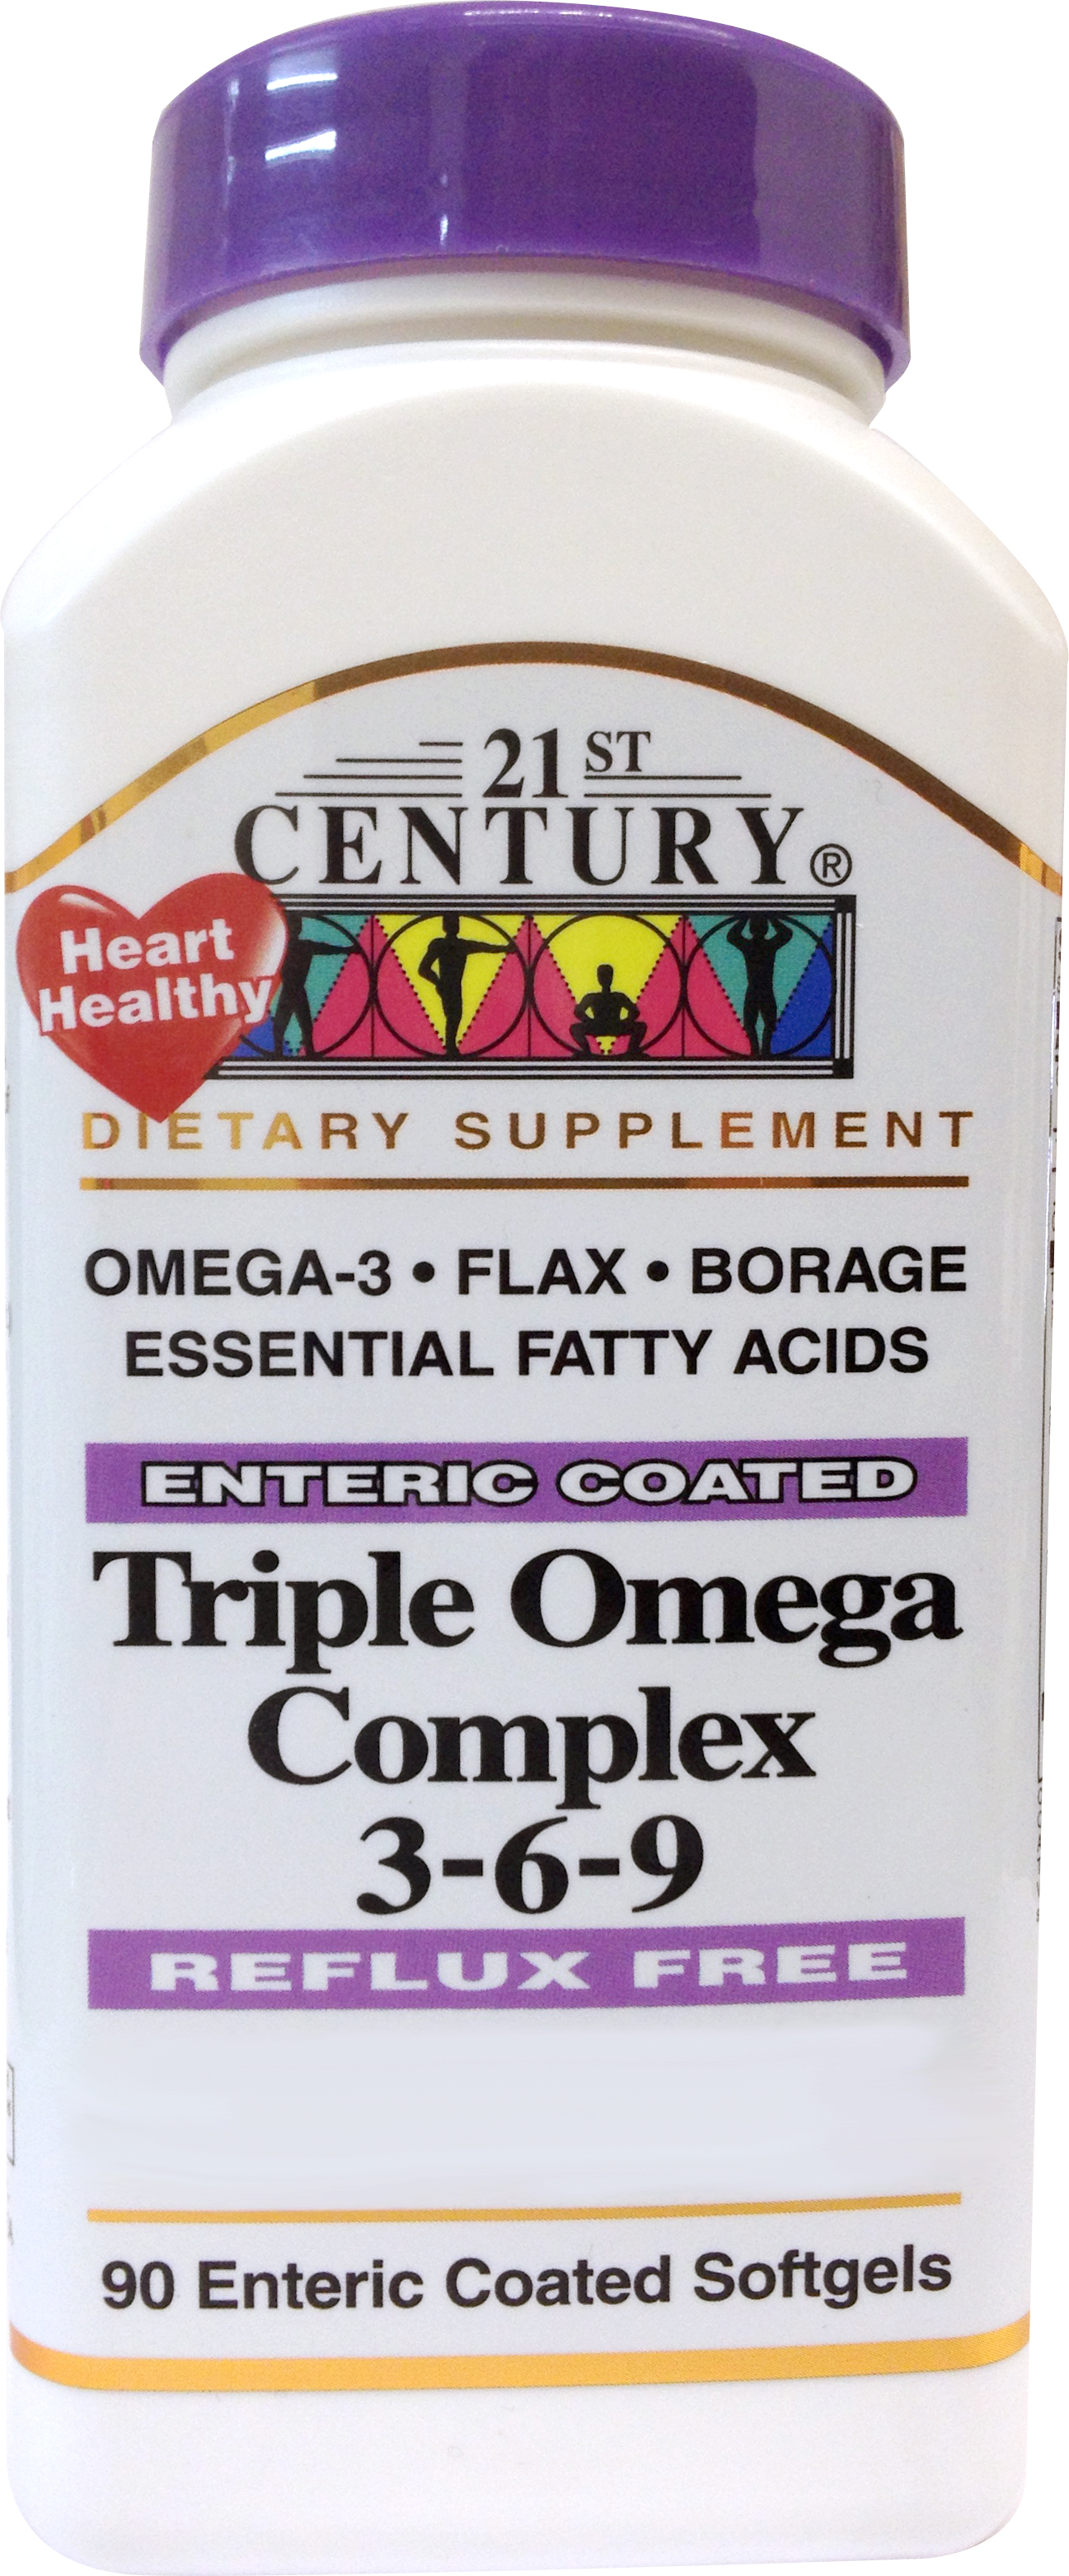 TRIPLE OMEGA 3,6,9 odourless, no burp HK$65